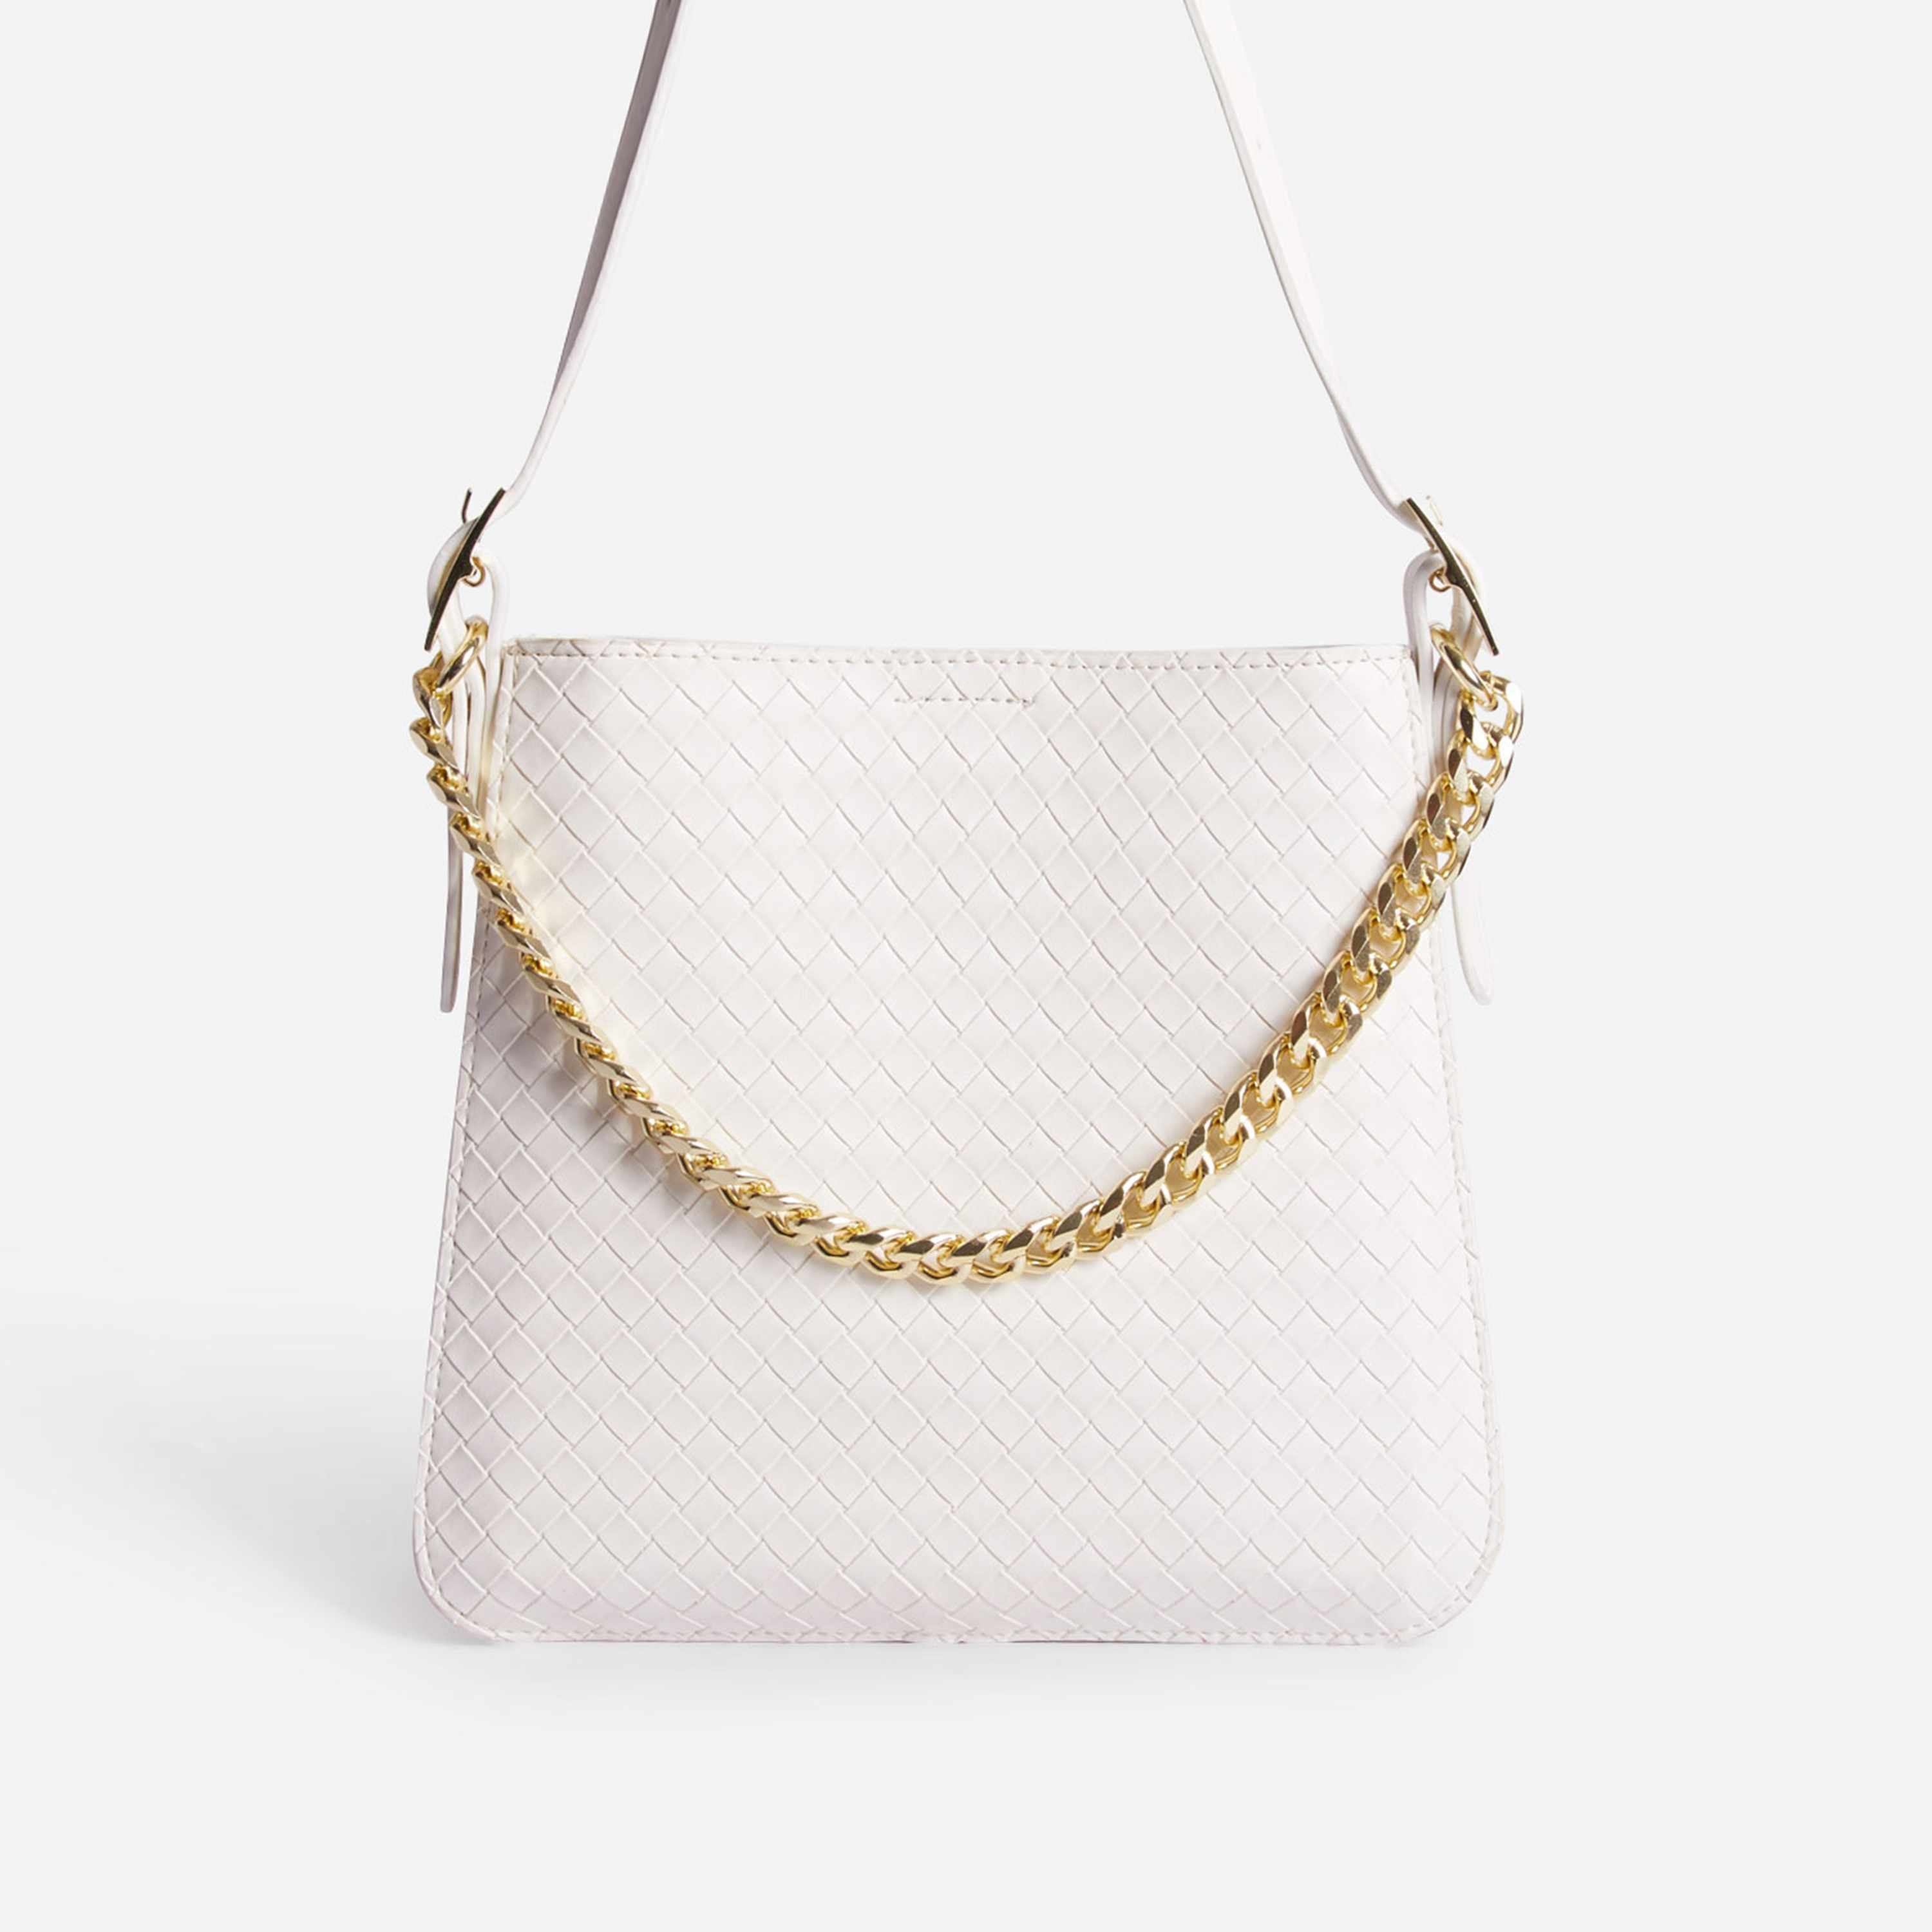 Timing Chain Detail Woven Shoulder Bag In White Faux Leather